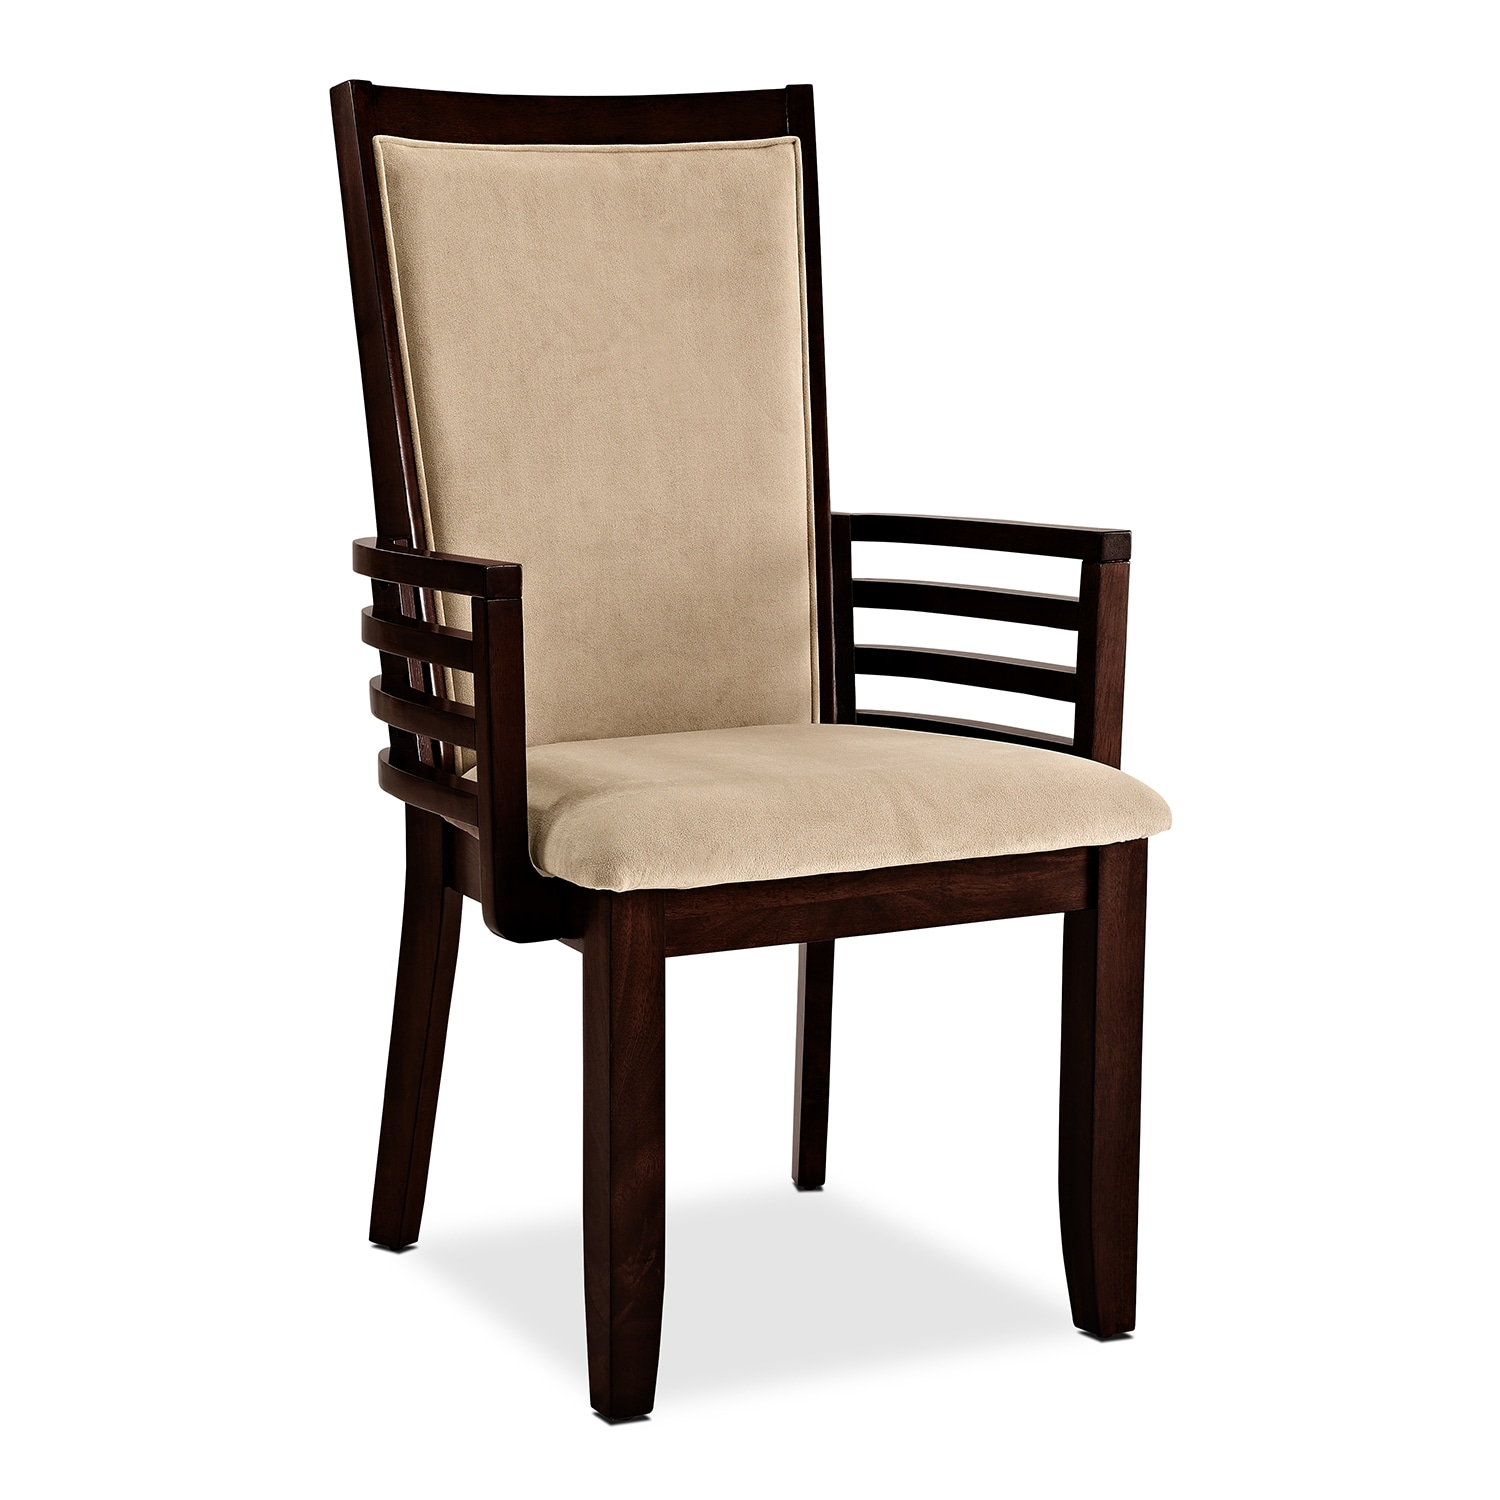 American Signature Furniture Paragon Dining Room Arm Chair